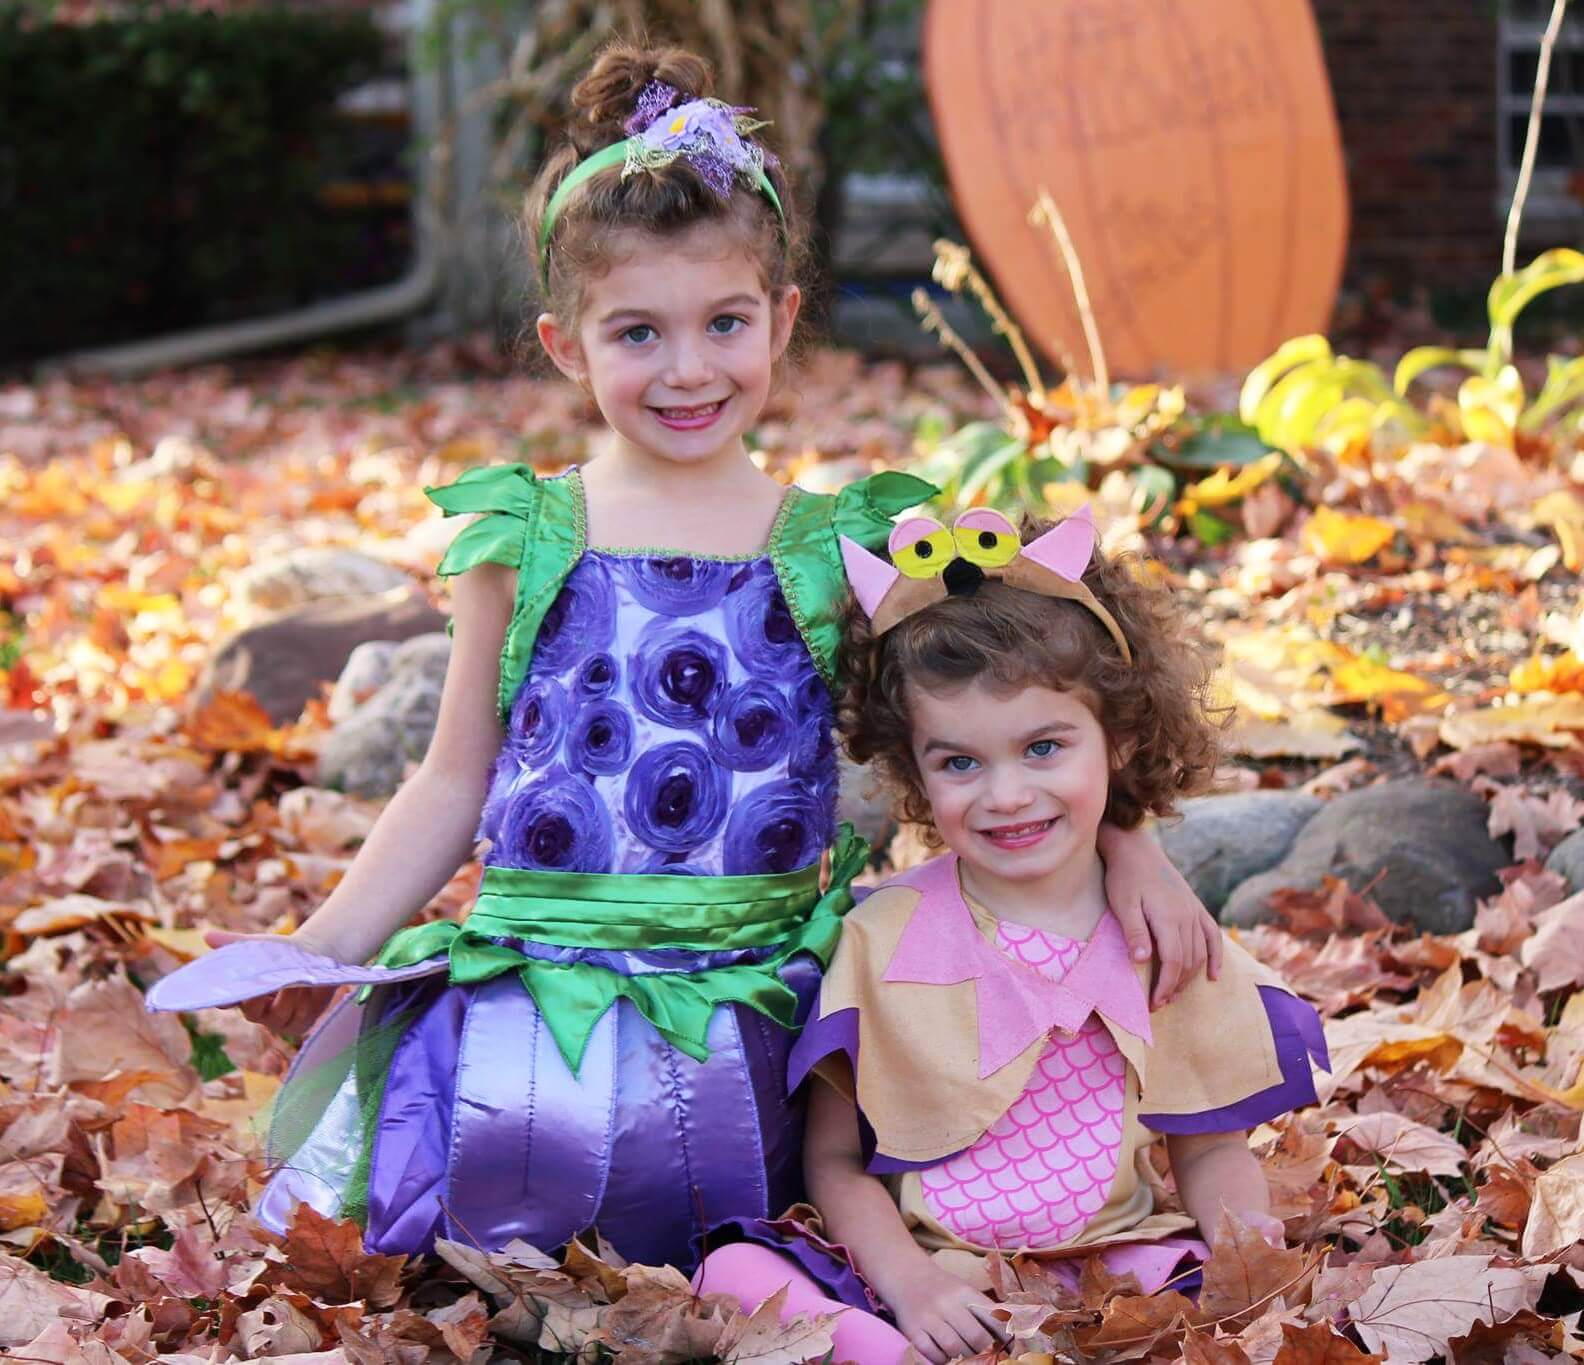 Two girls in costumes playing in leaves